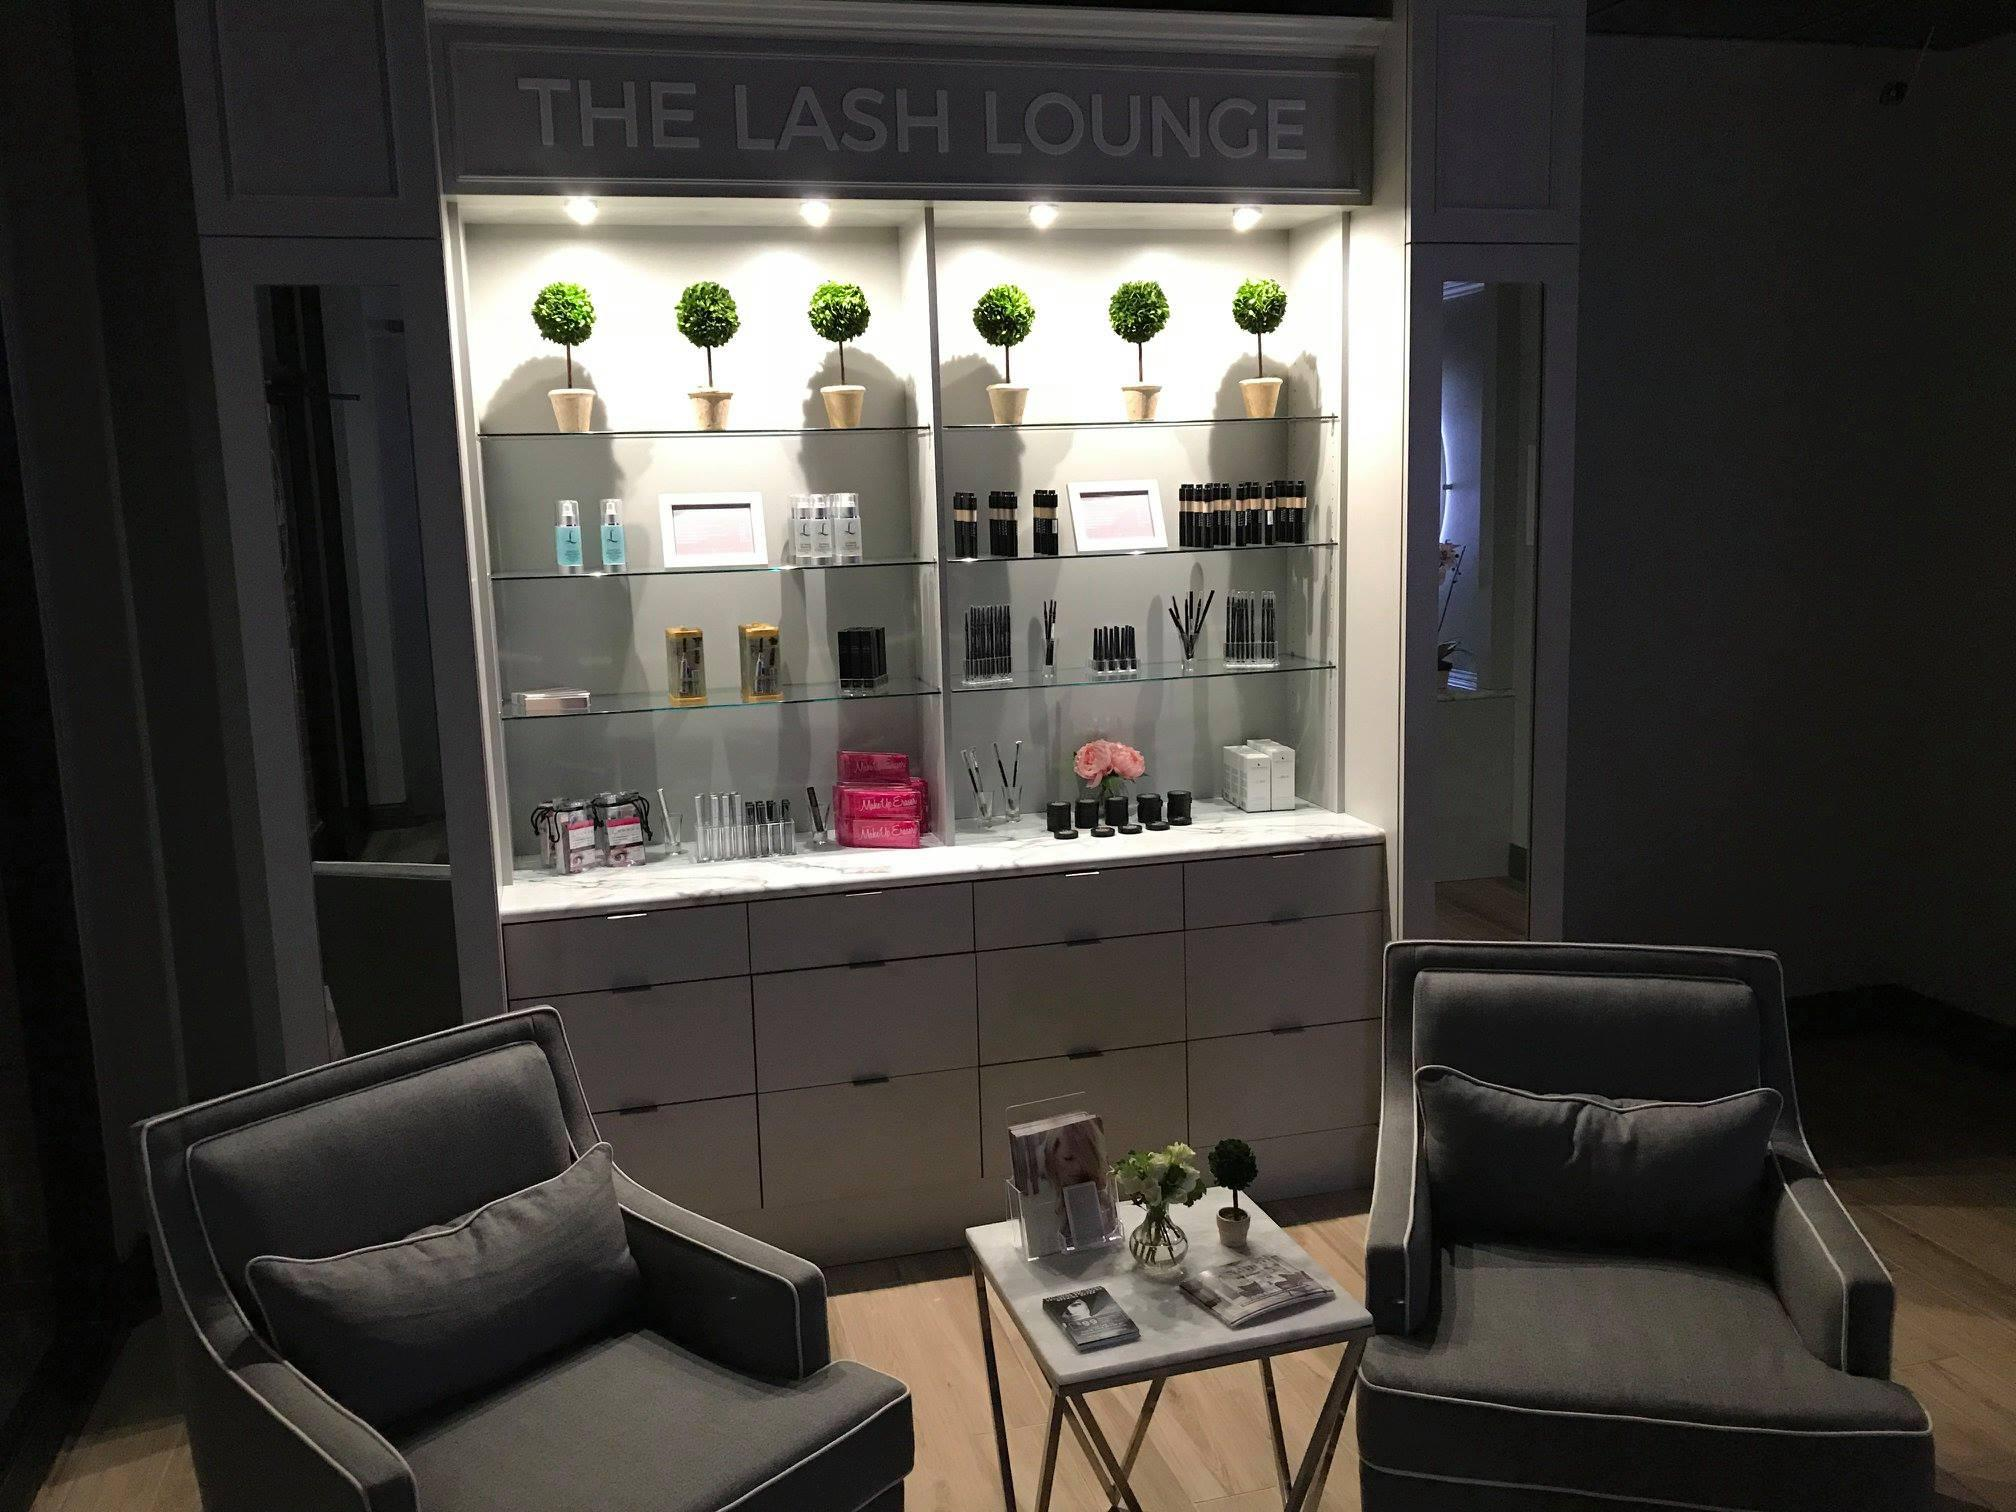 The Lash Lounge image 2